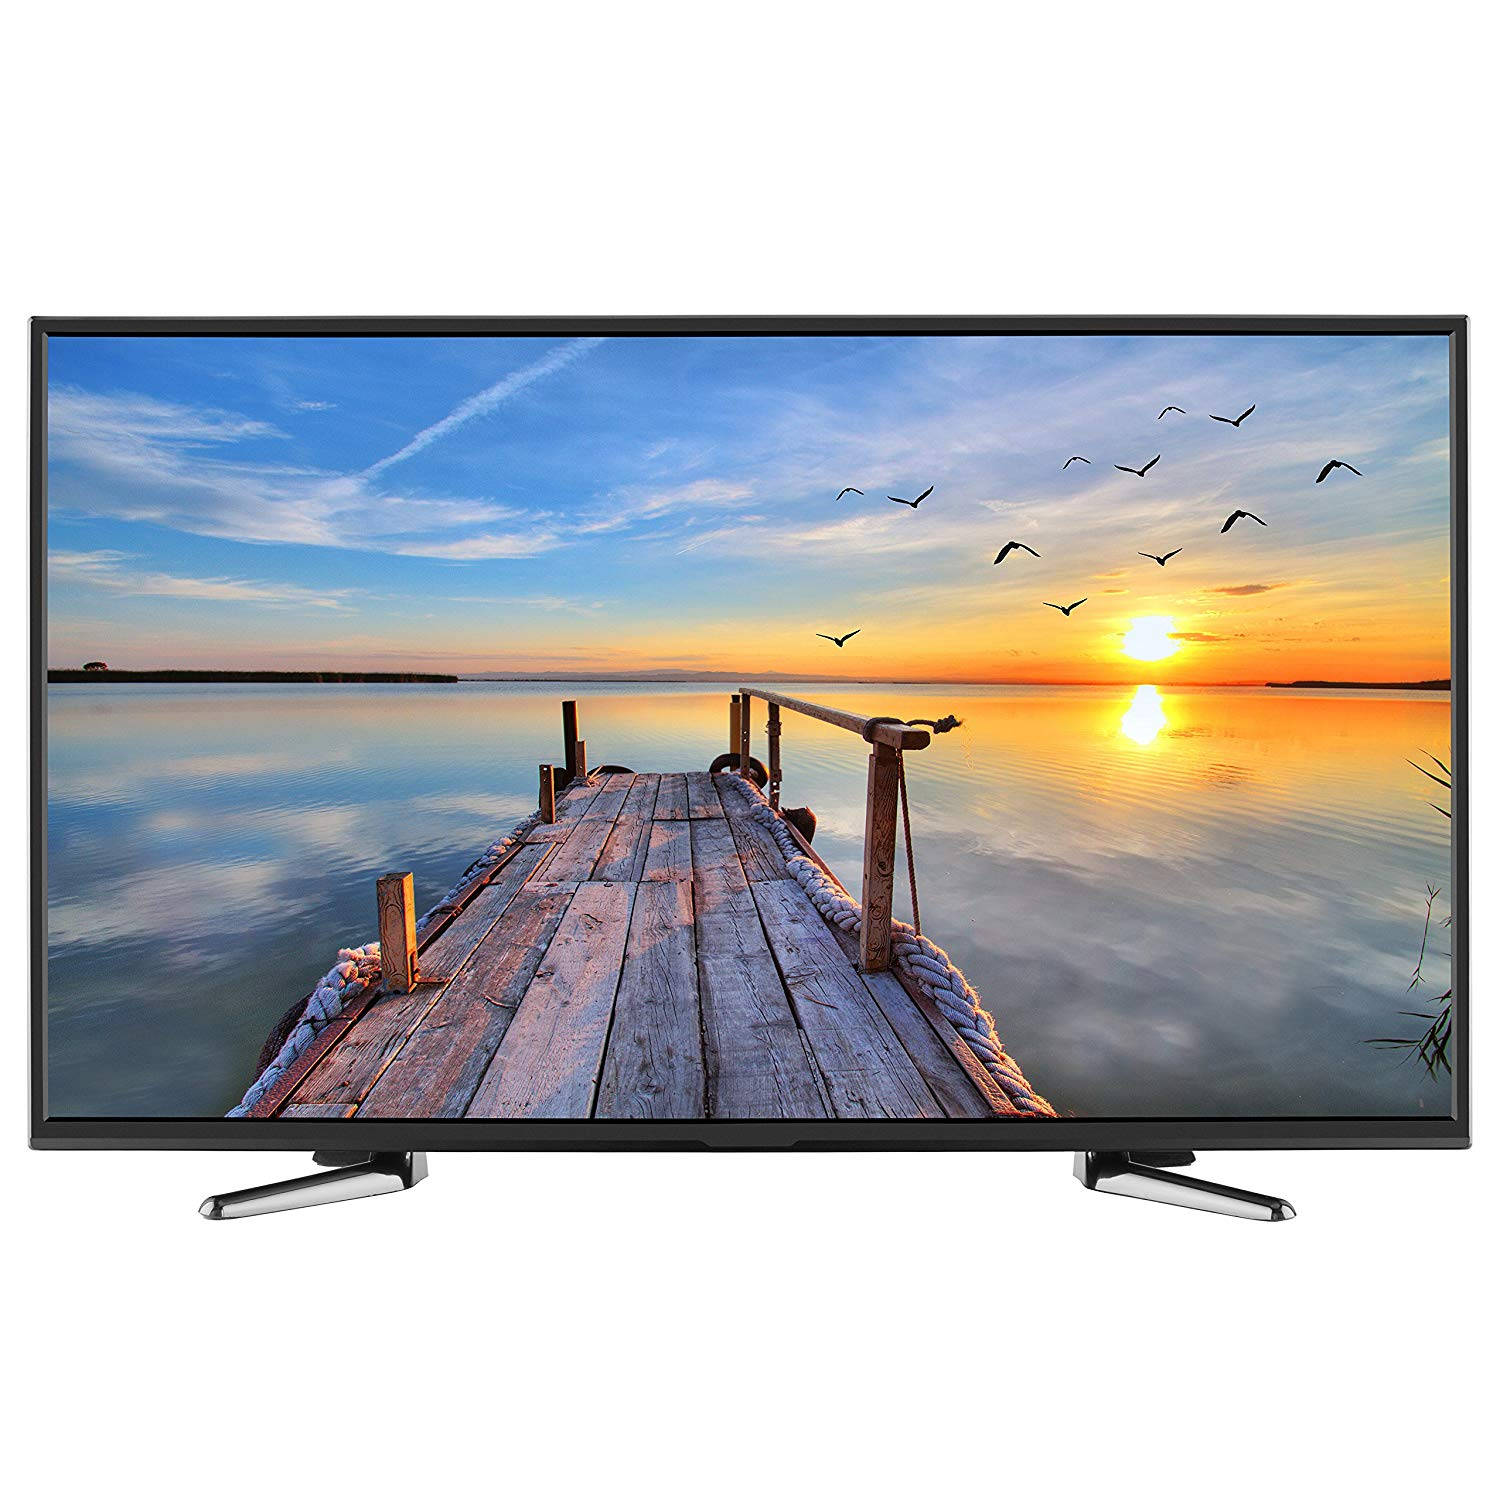 HKC 40K7A - Full HD LED tv